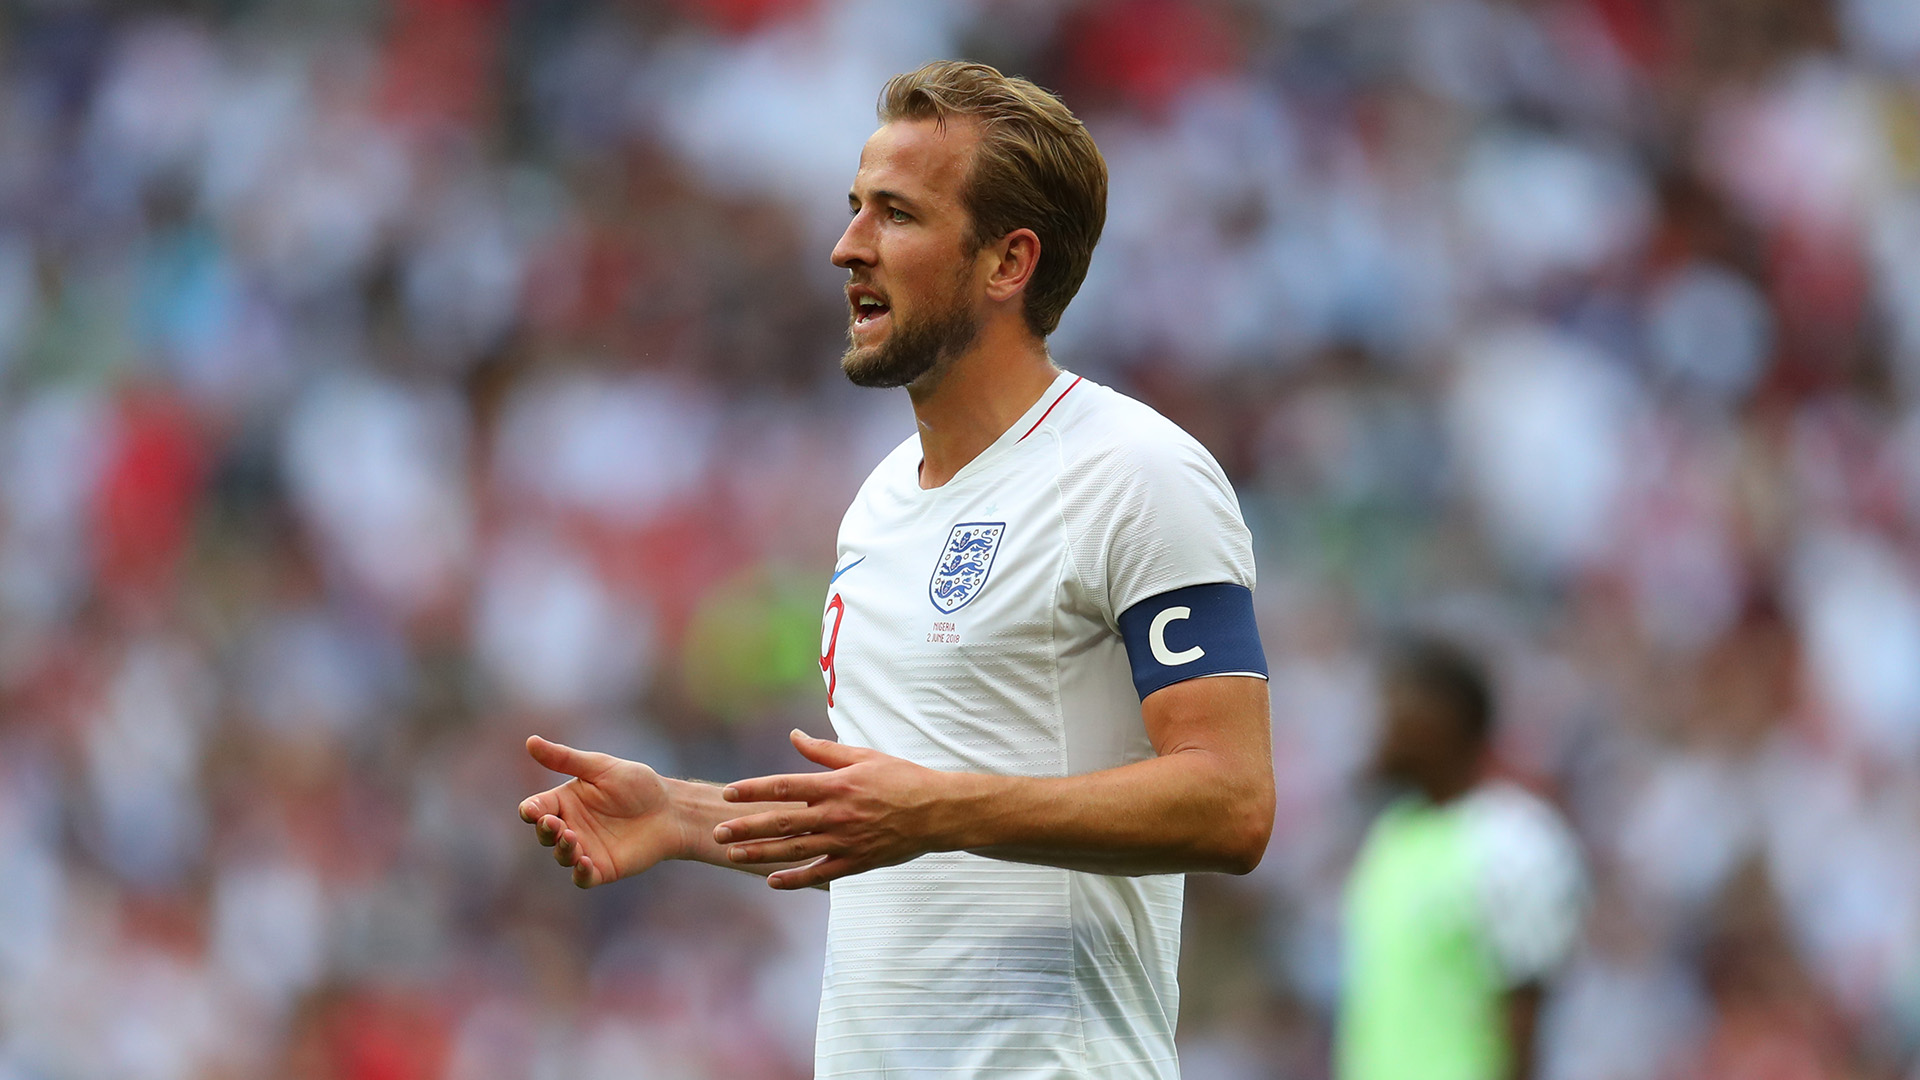 Kane's late victor  lifts England over Tunisia at World Cup